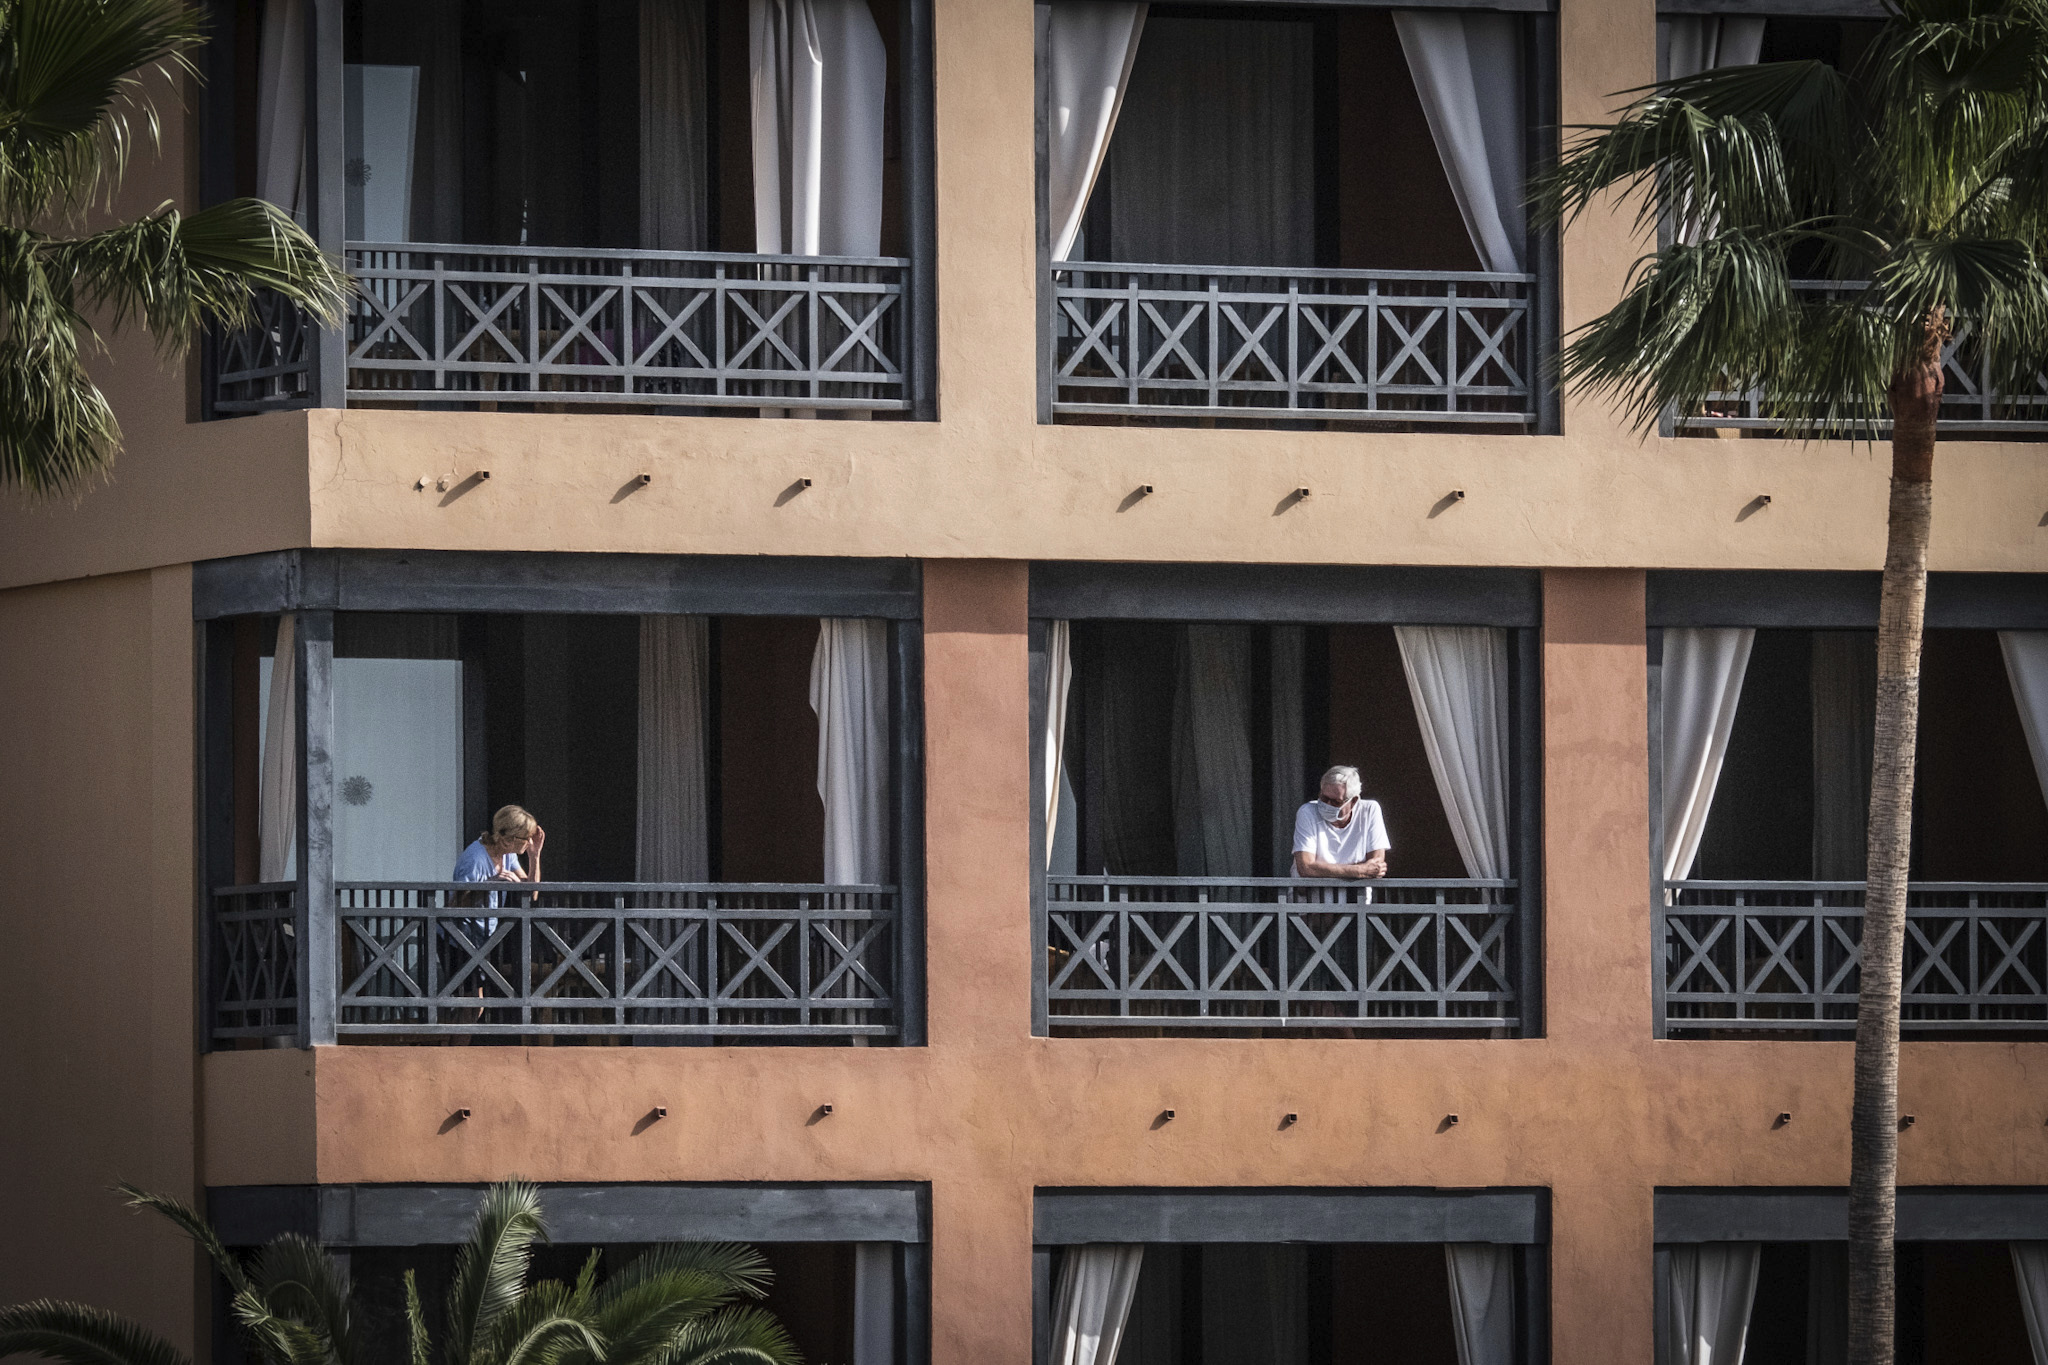 The hotel H10 Costa Adeje Palace, which has been quarantined because of coronavirus cases, continues to be cordoned off by the police on Feb. 27 in Santa Cruz de Tenerife, Spain.